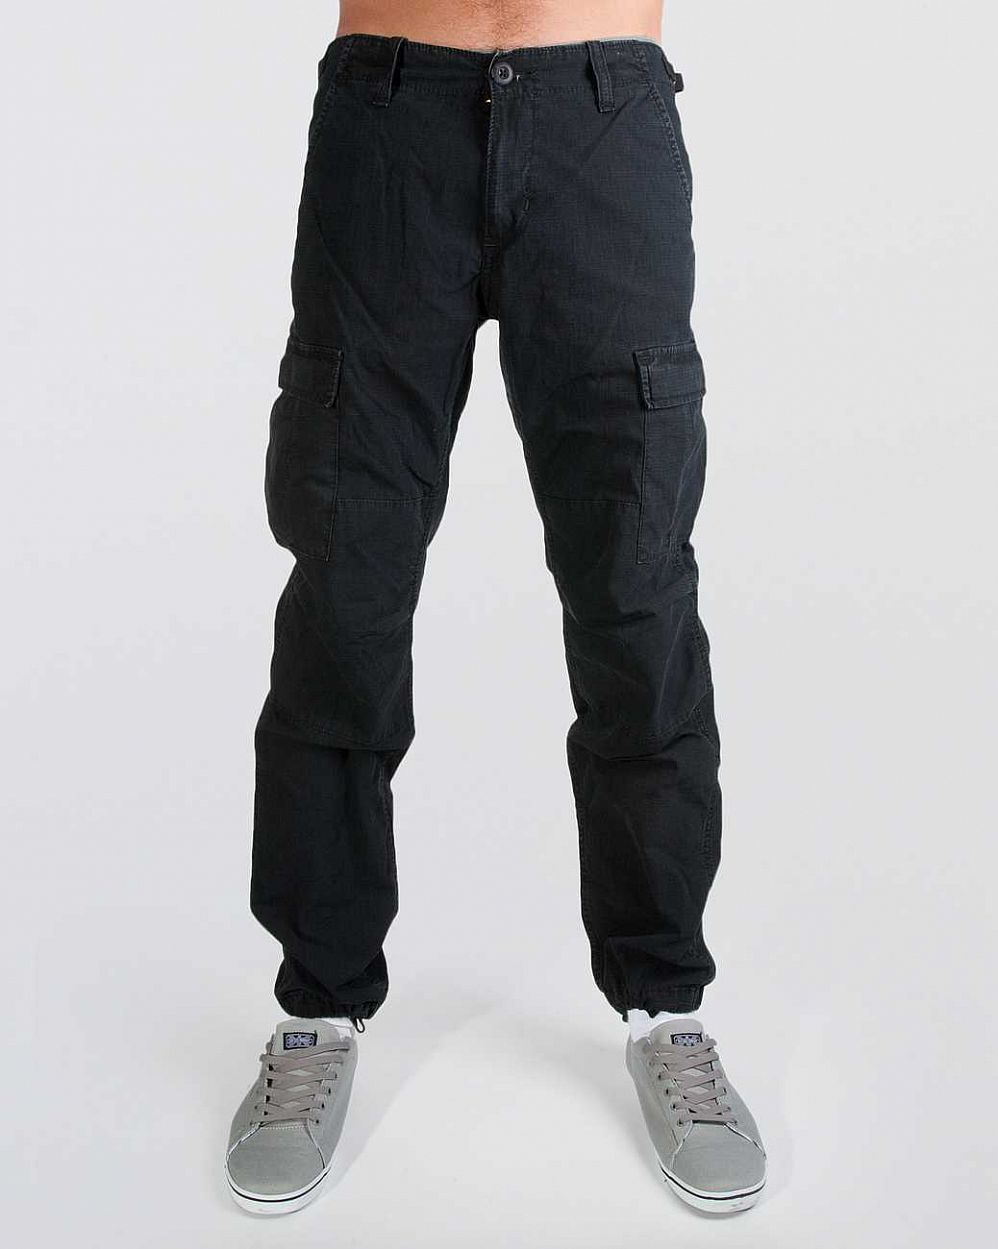 Брюки зауженные Carhartt WIP Aviation Regular Ripstop 6,5 Oz Stone отзывы